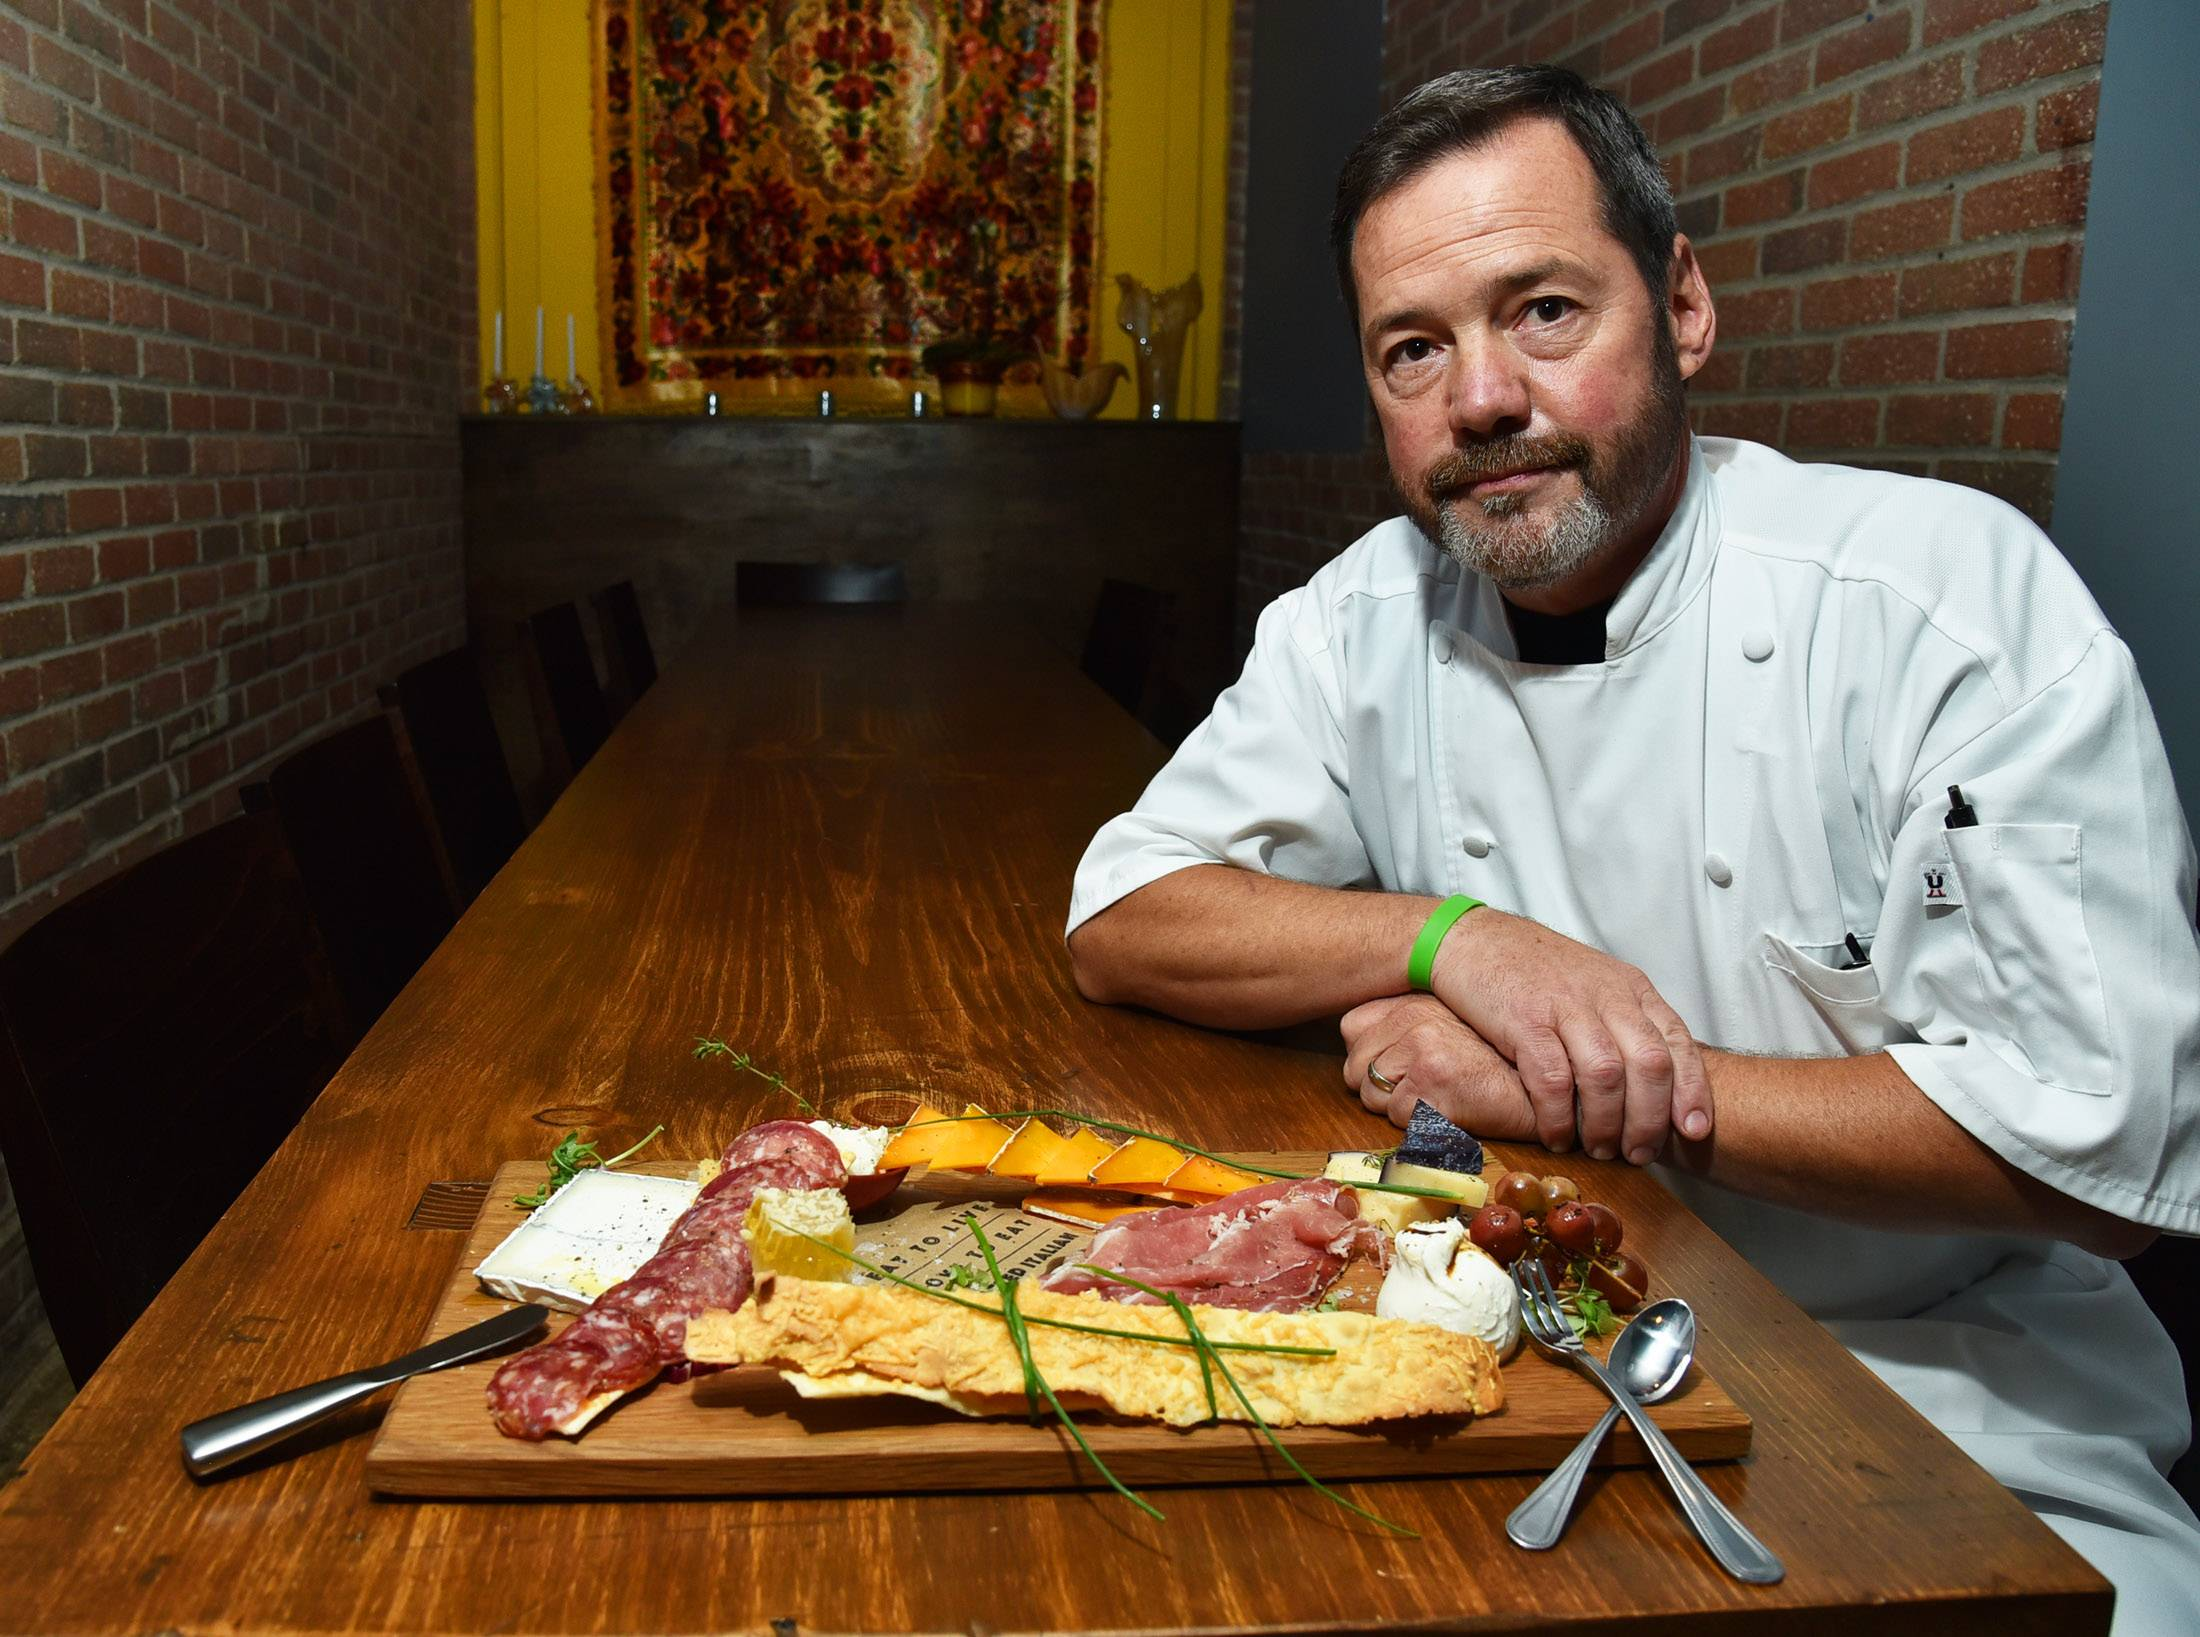 Chef Mike Bomberger's Chef's Board features a mix of meat and cheeses at Livia Italian Eatery in Geneva.